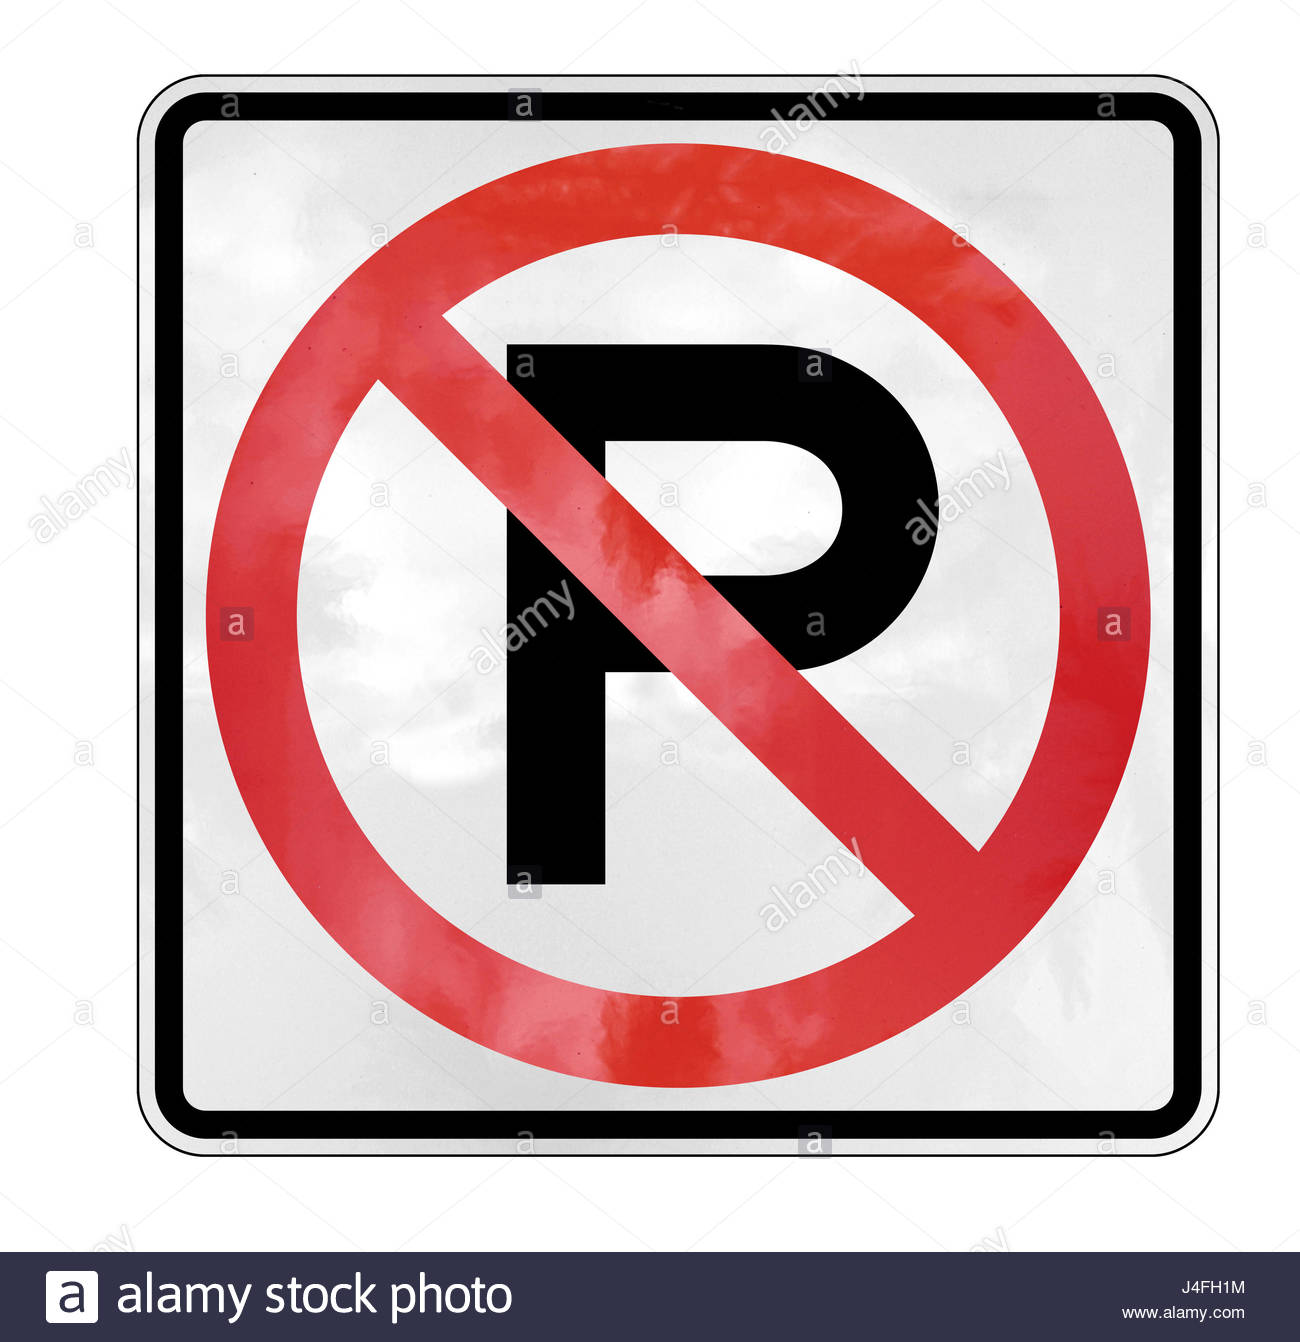 no parking sign forbidden - Stock Image